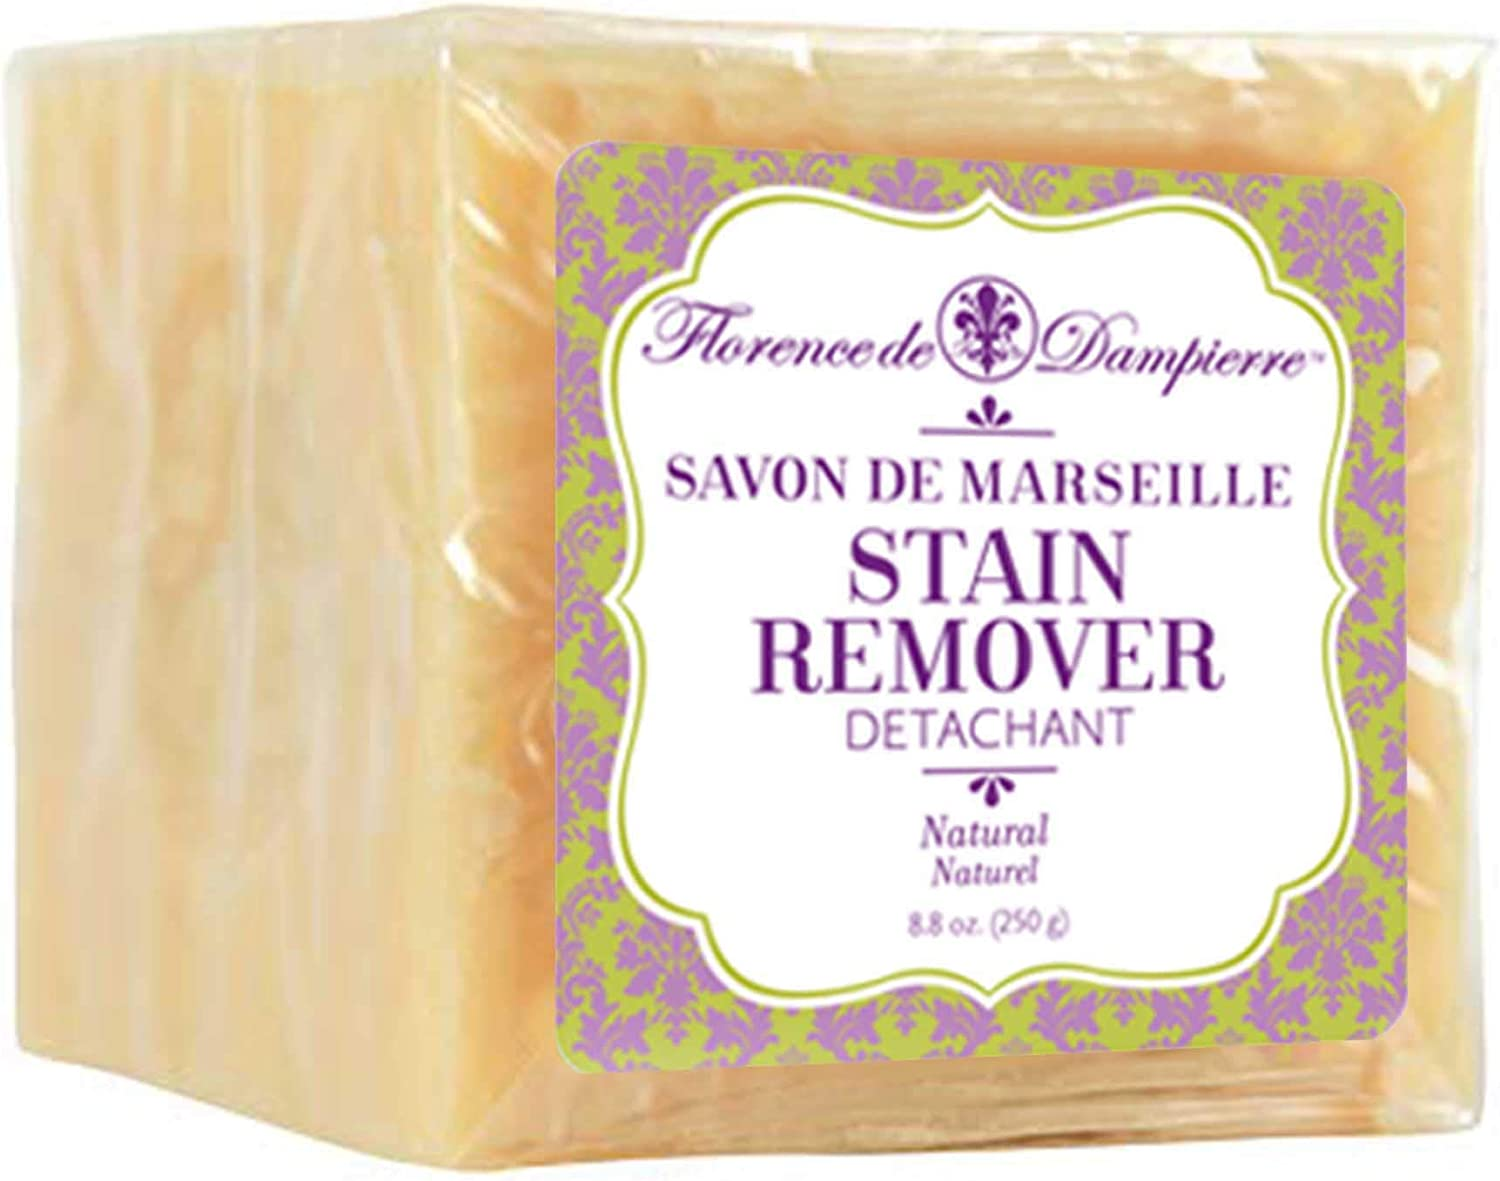 Florence de Dampierre, Organic and All-Natural, Extra-Large, Genuine Savon de Marseille Stain Removing Cube, 8.8 oz. - Unscented